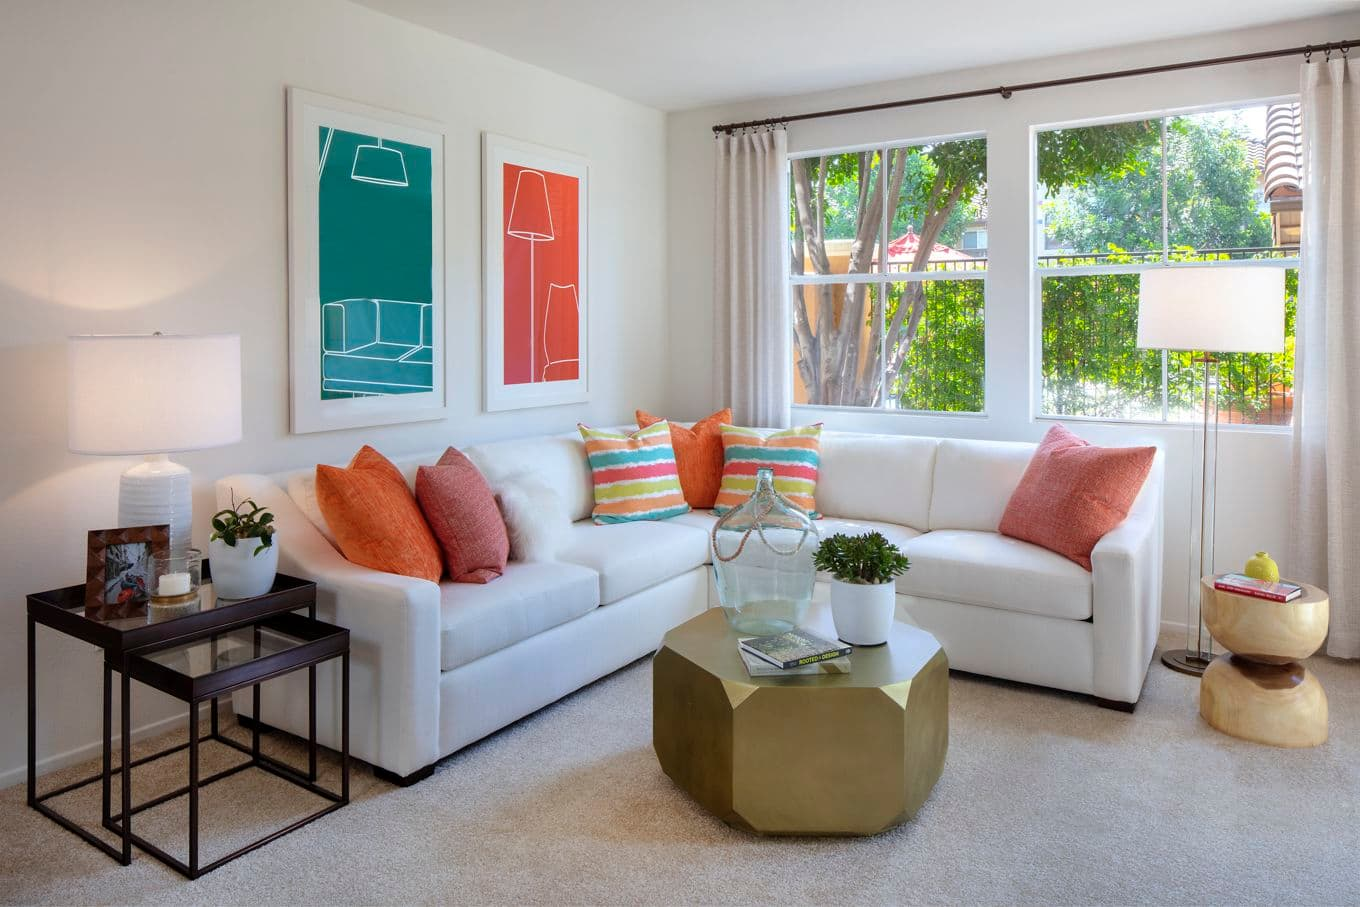 Interior view of living room at Sonoma Apartment Homes at Oak Creek in Irvine, CA.